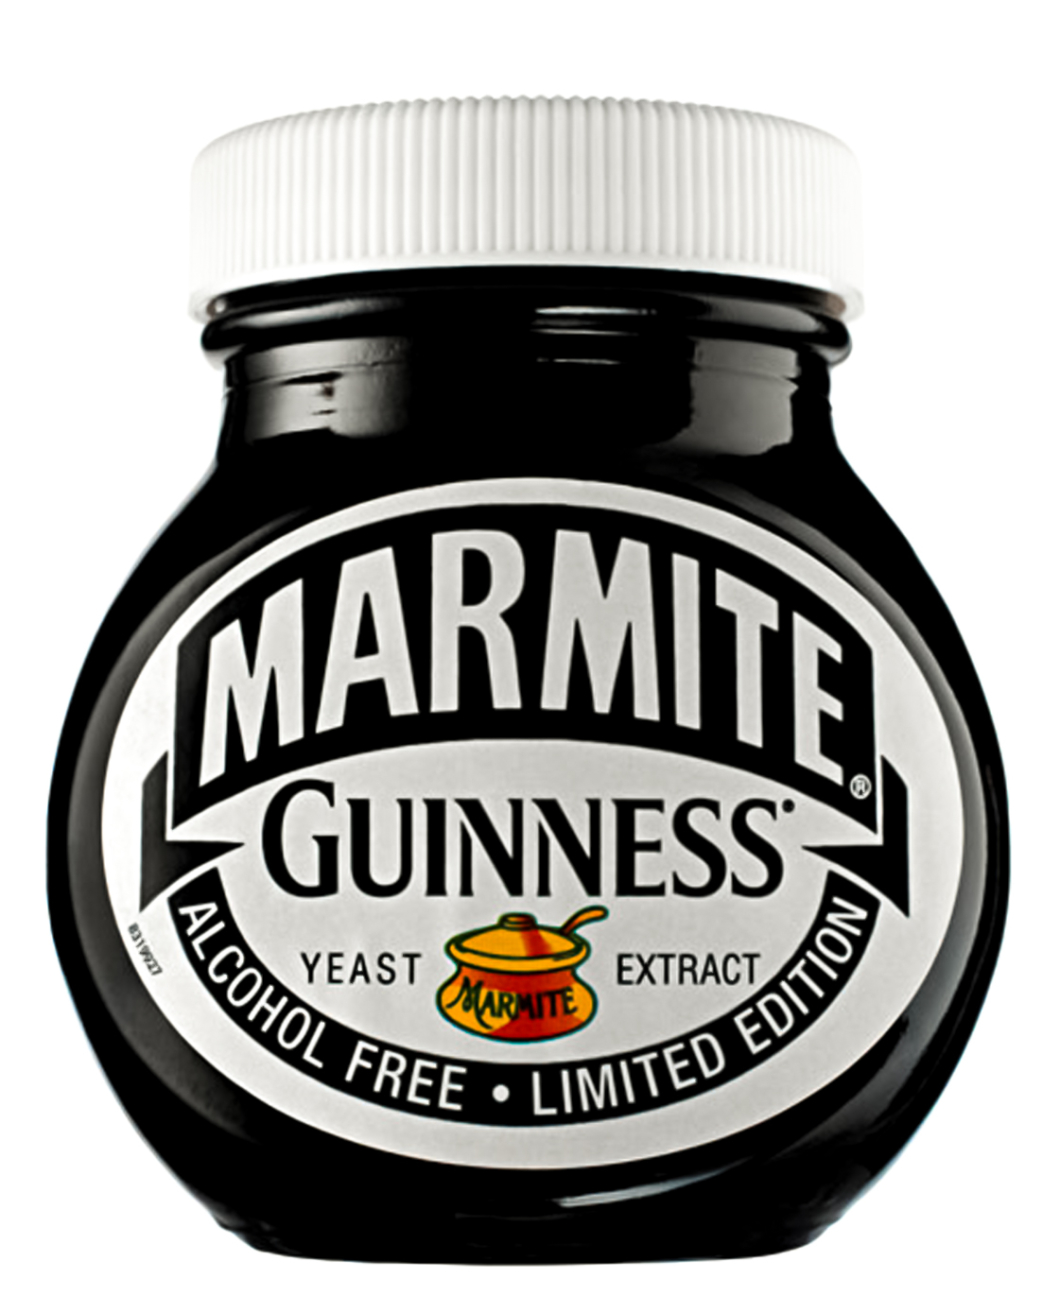 Marmite Guinness St Paddy's Day 2007